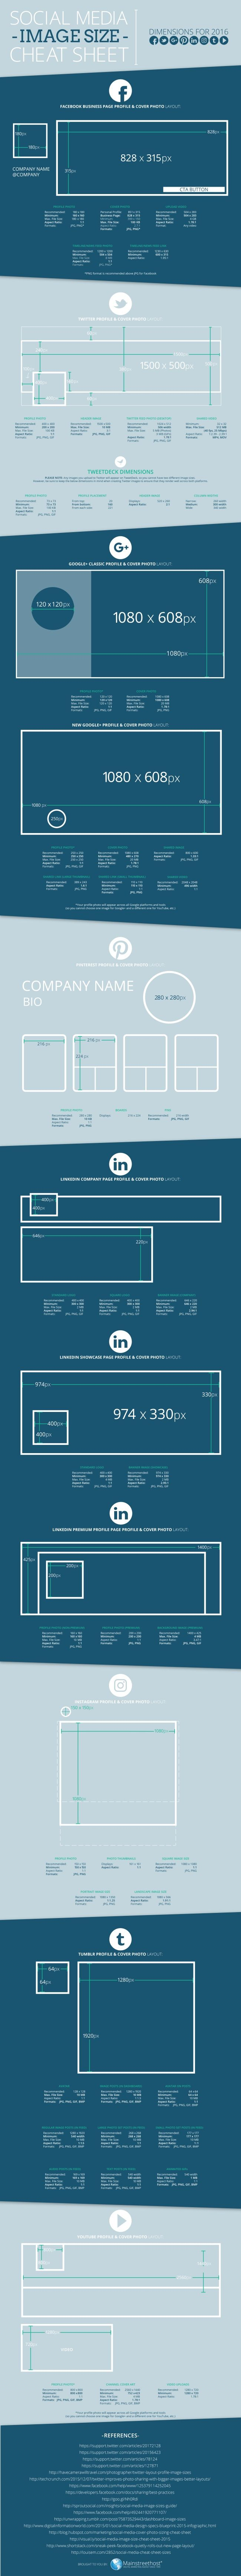 Social Media Image Sizes for 2016 [Infographic] | Social Media Today - Tap the link to shop on our official online store! You can also join our affiliate and/or rewards programs for FREE!